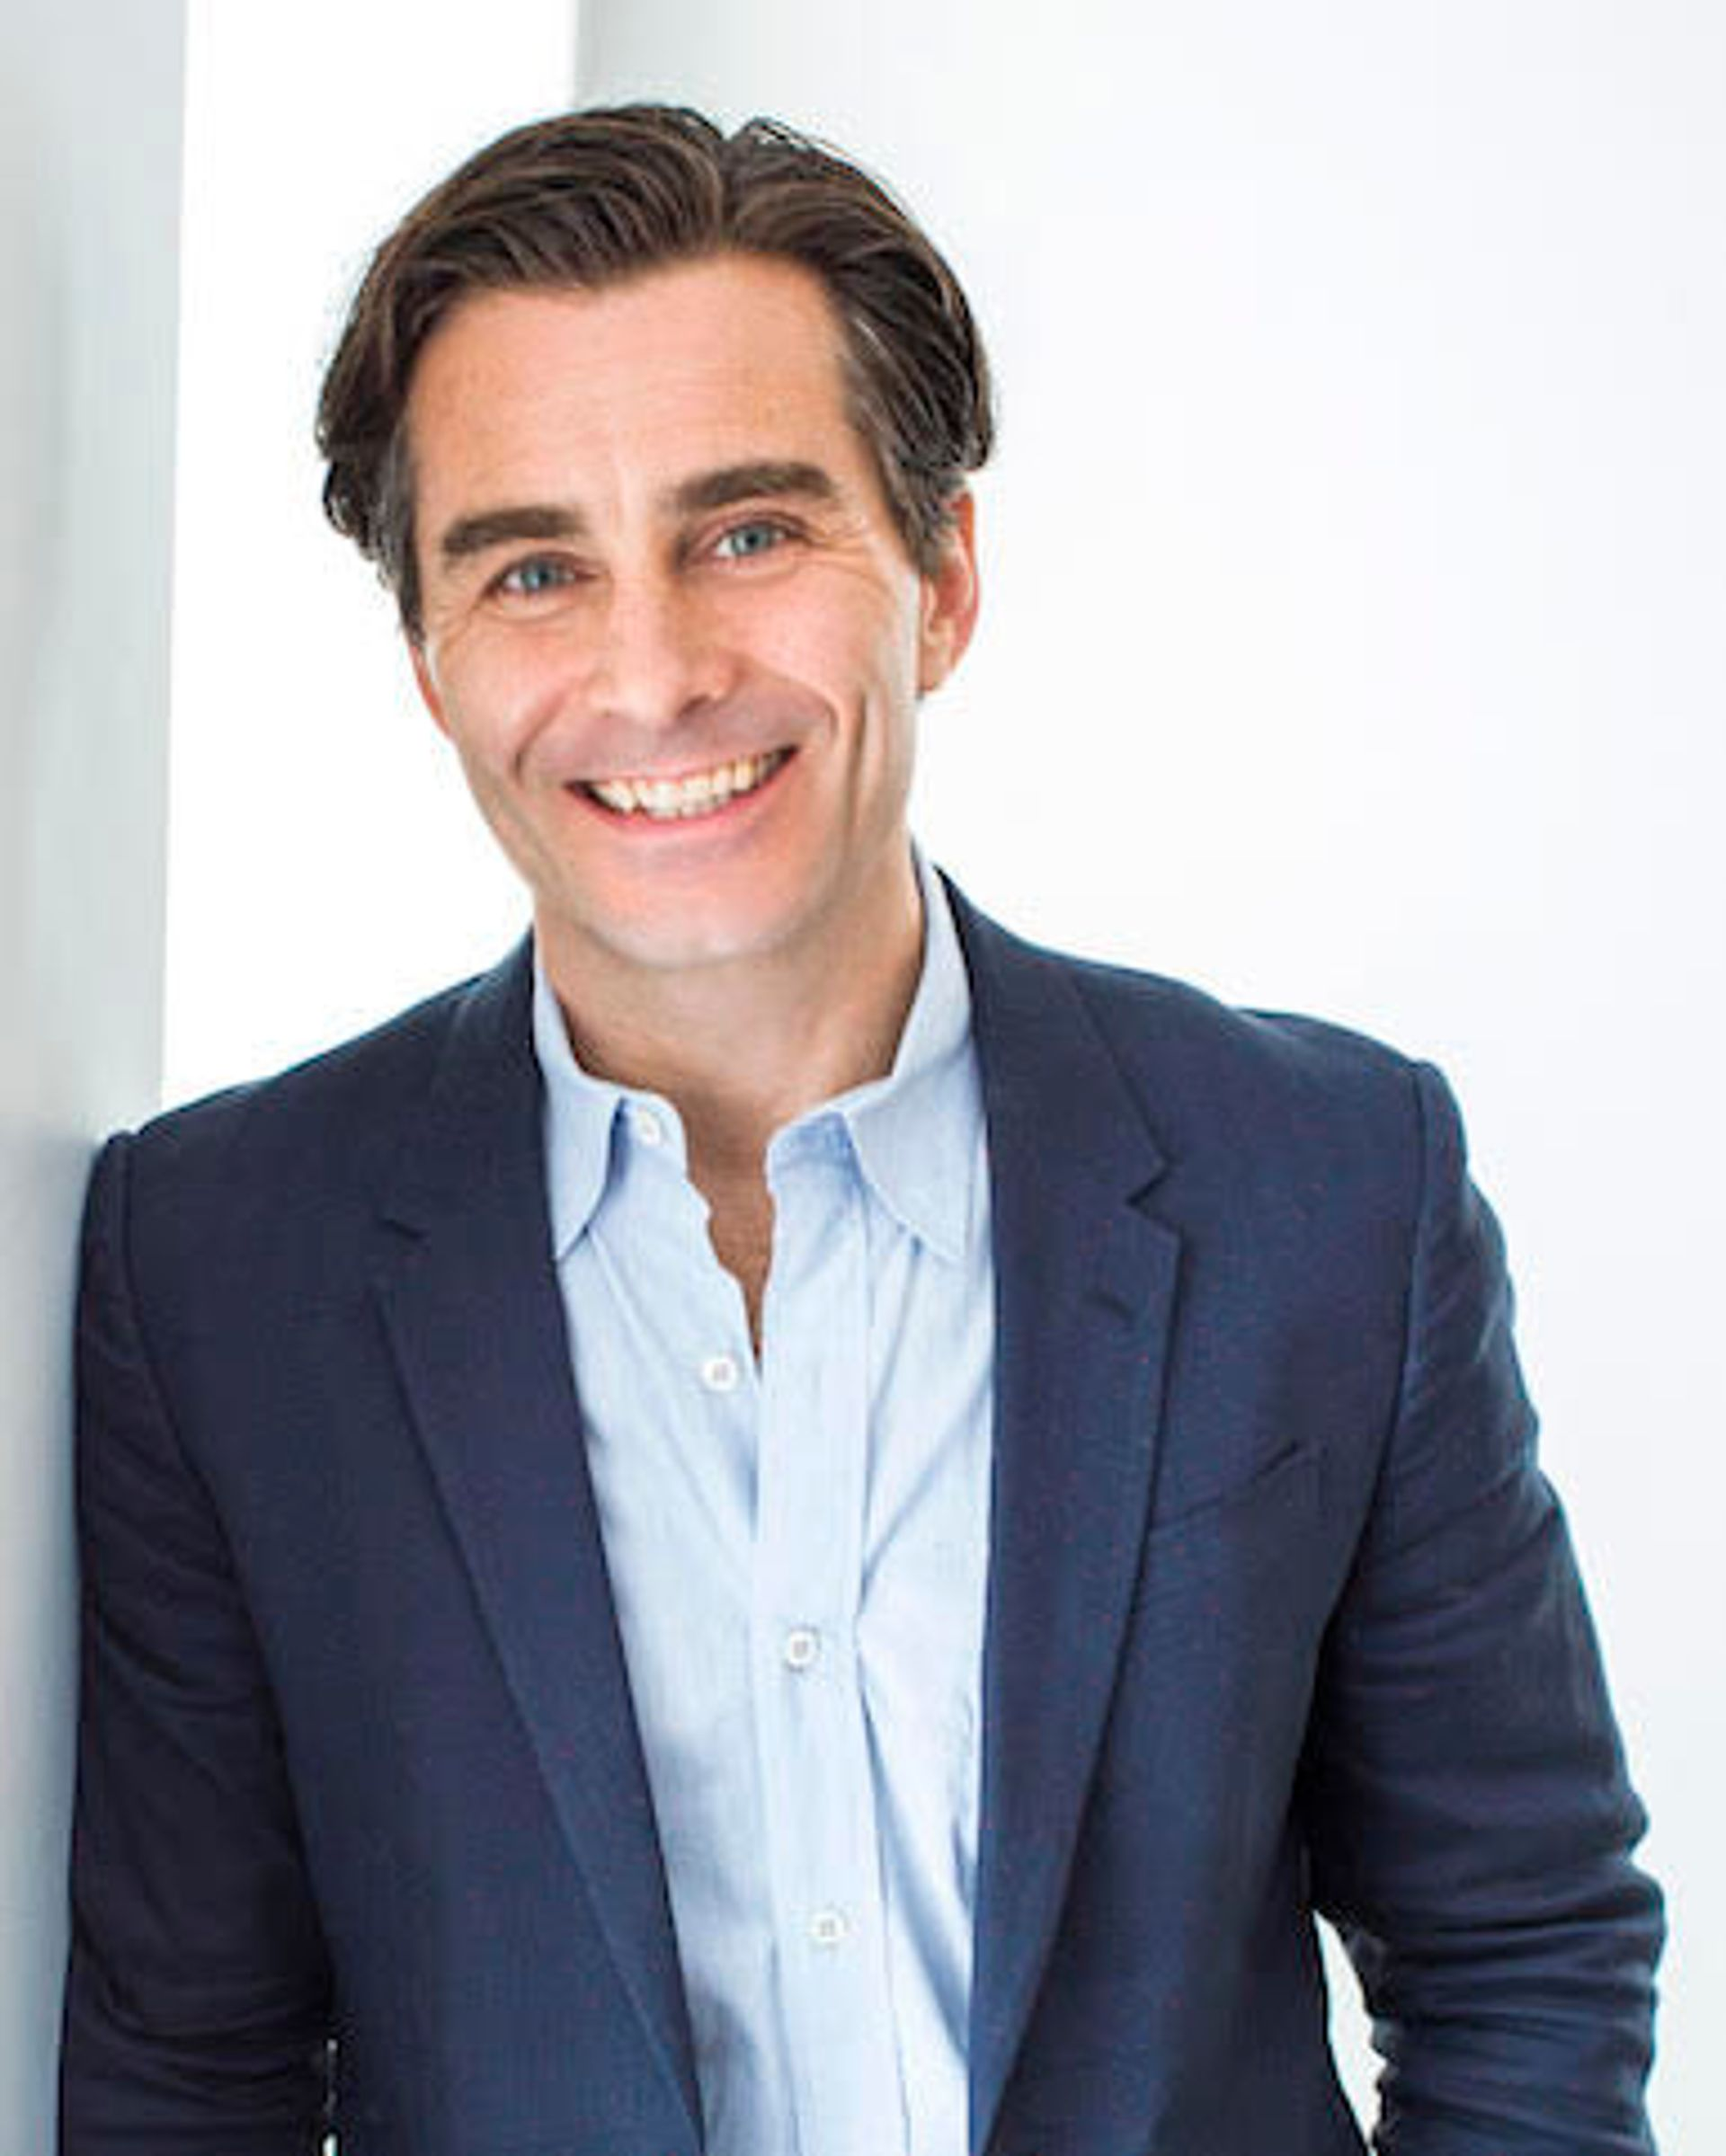 Mike Steib joined Artsy as chief executive in June. Courtesy of Artsy